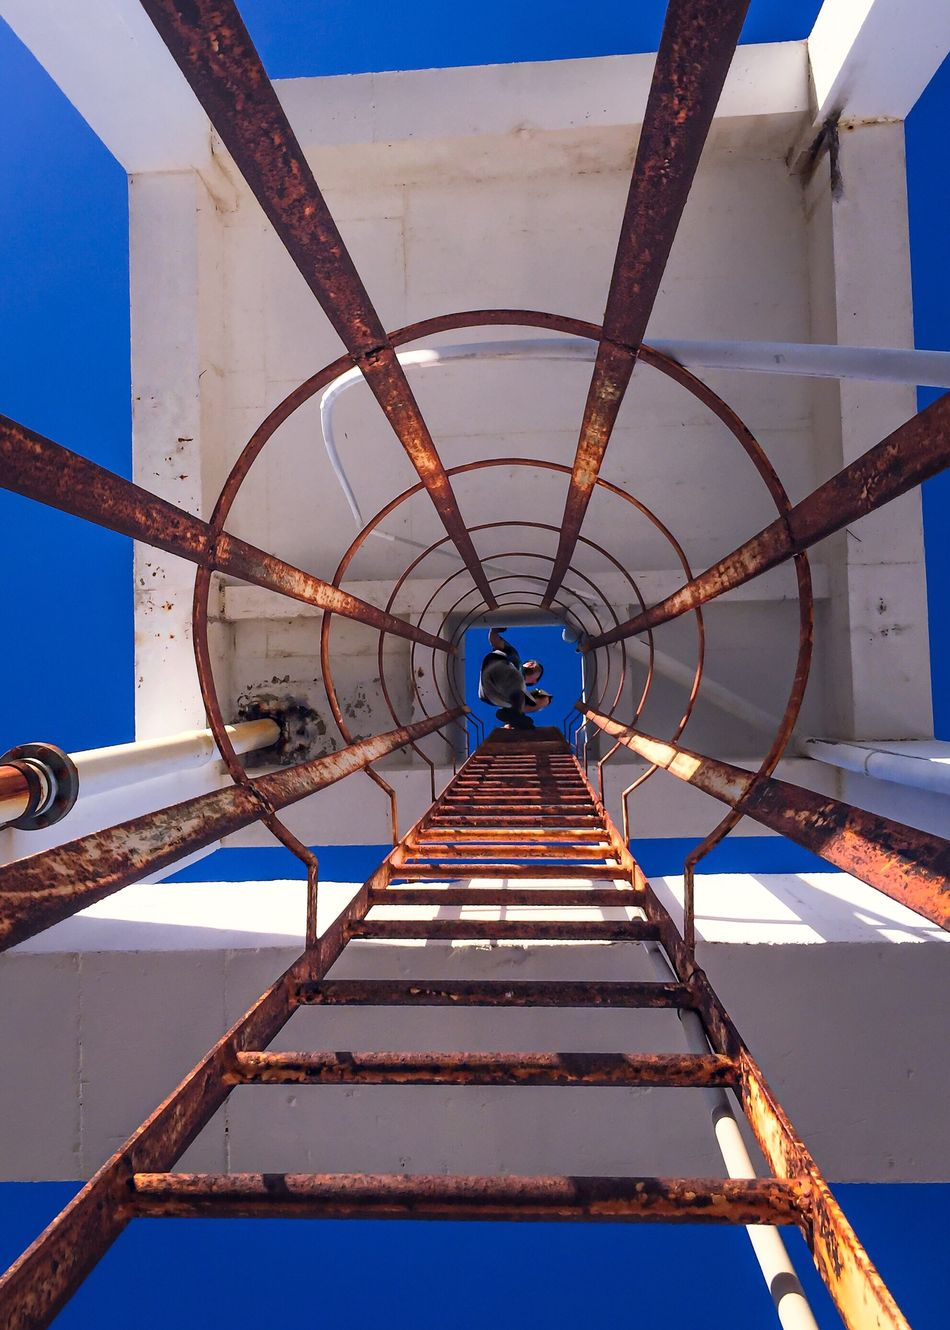 Check This Out Hanging Out Hello World Taking Photos EyeEm Gallery Water Tower Climbing Facing Heights Heights Ladder Perspective Eye4photography  Person Working Looking Up